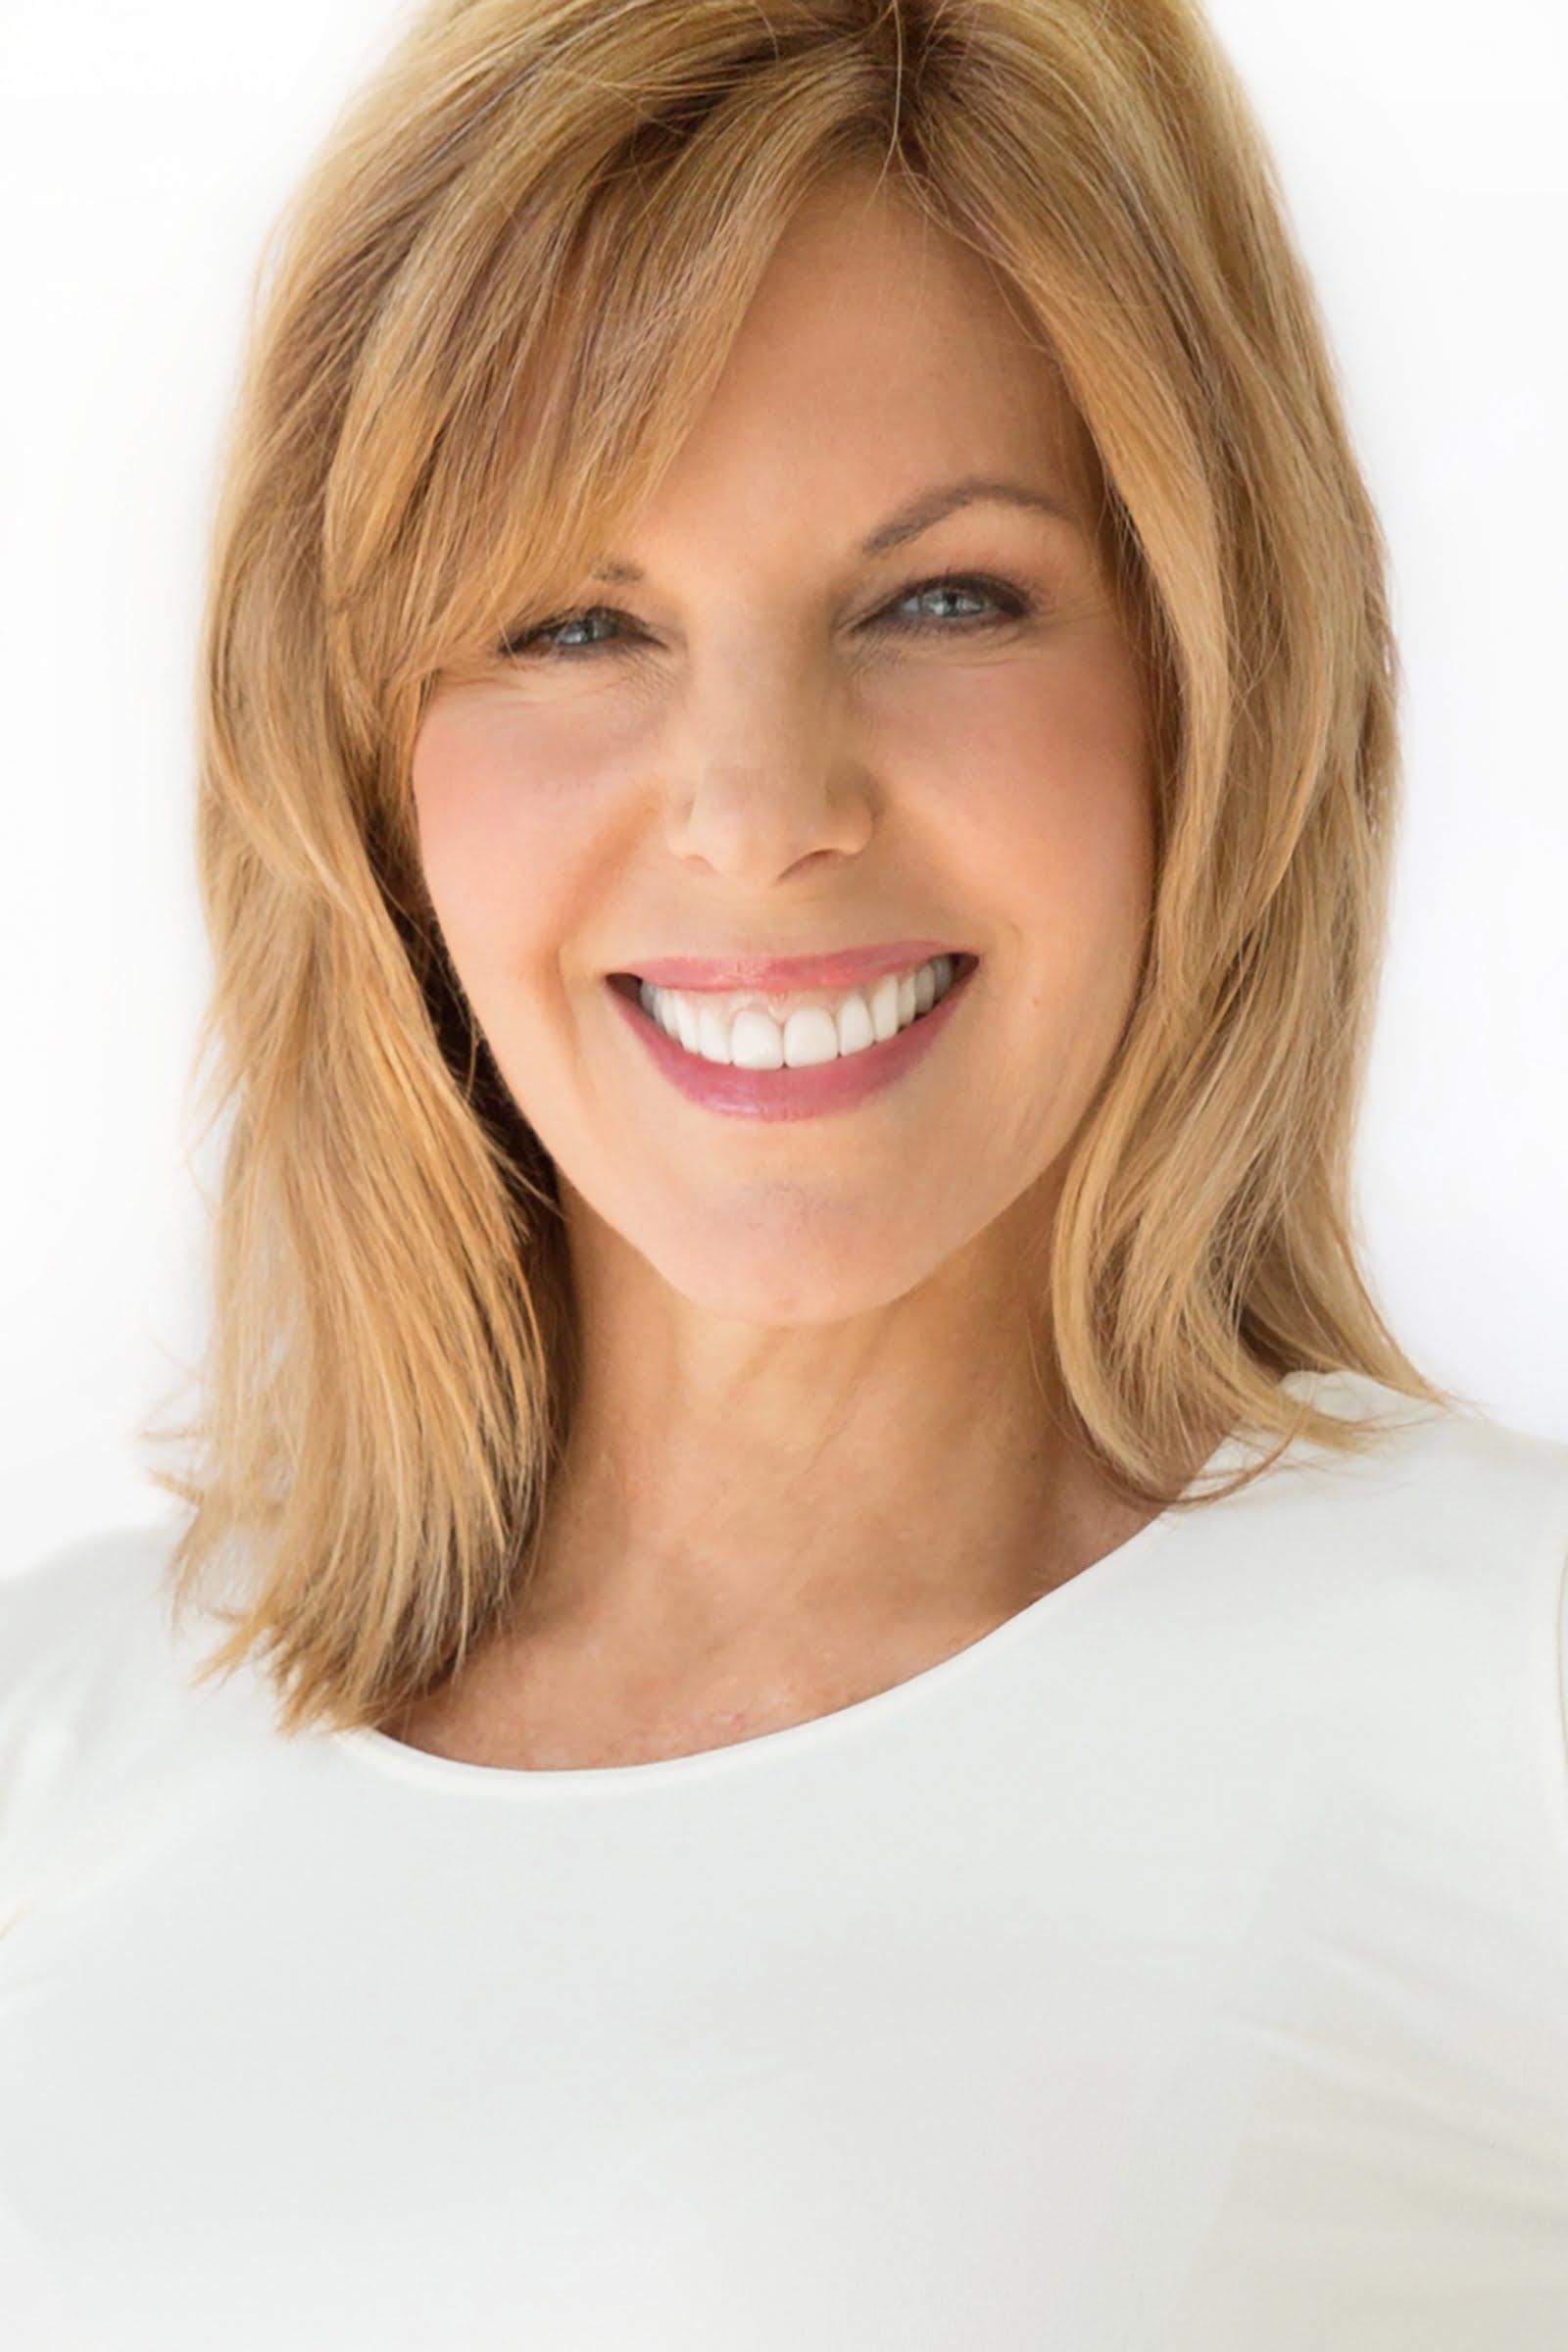 Kathy Doran Intuitive Business Consultant Honored With Two TITAN Business Awards